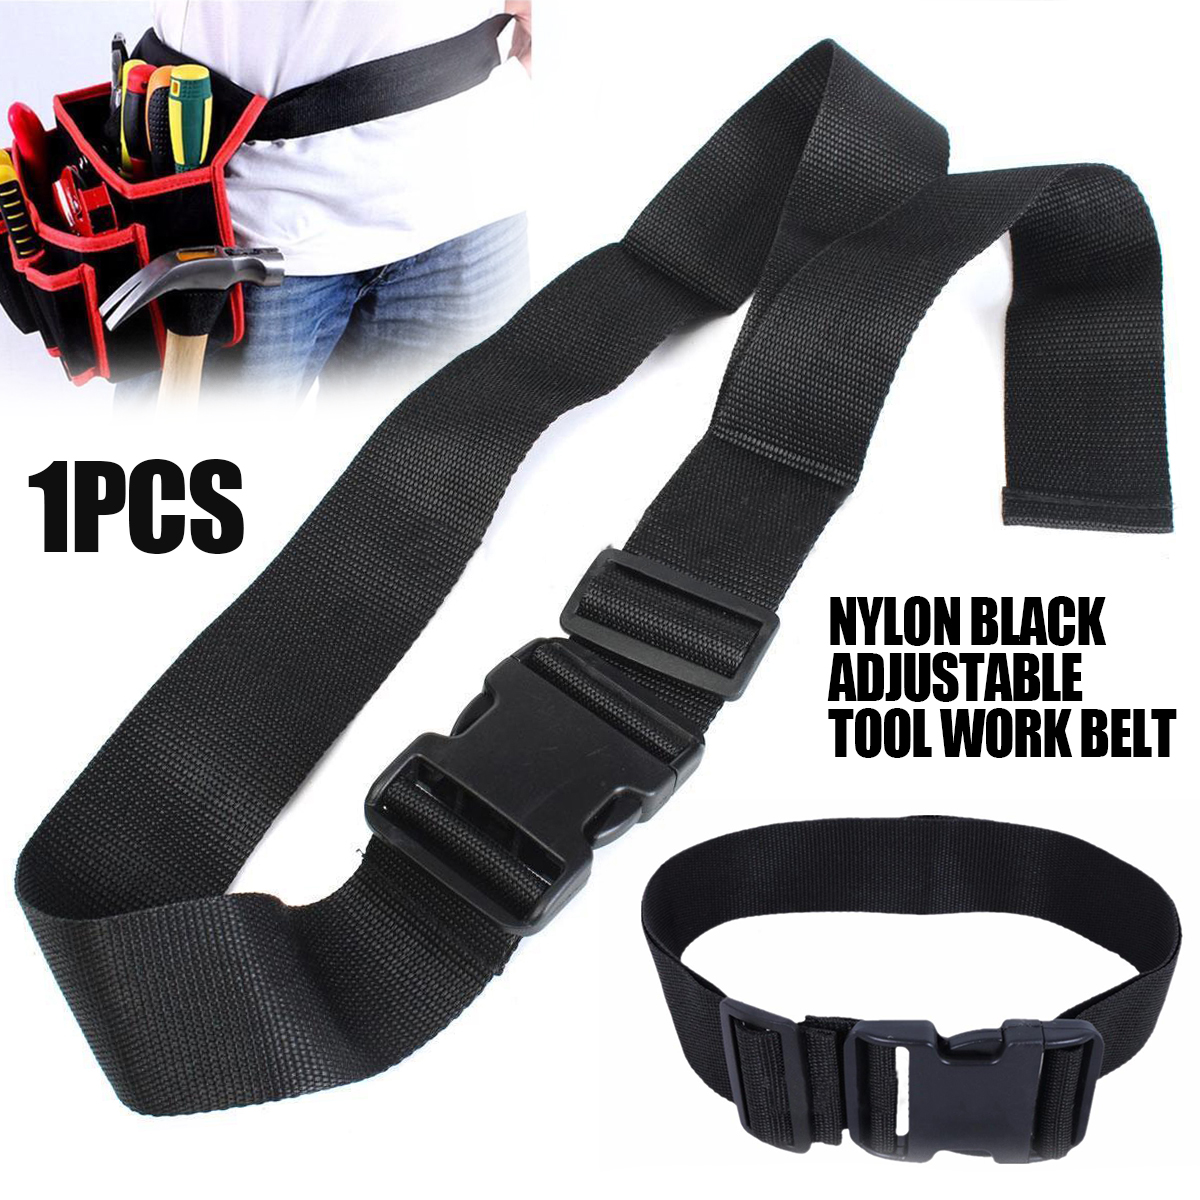 1PC Black Bag Belt Strap Waist Adjustable Nylon Belt Tool With Release Buckle For Outdoor Working Pouch Holder